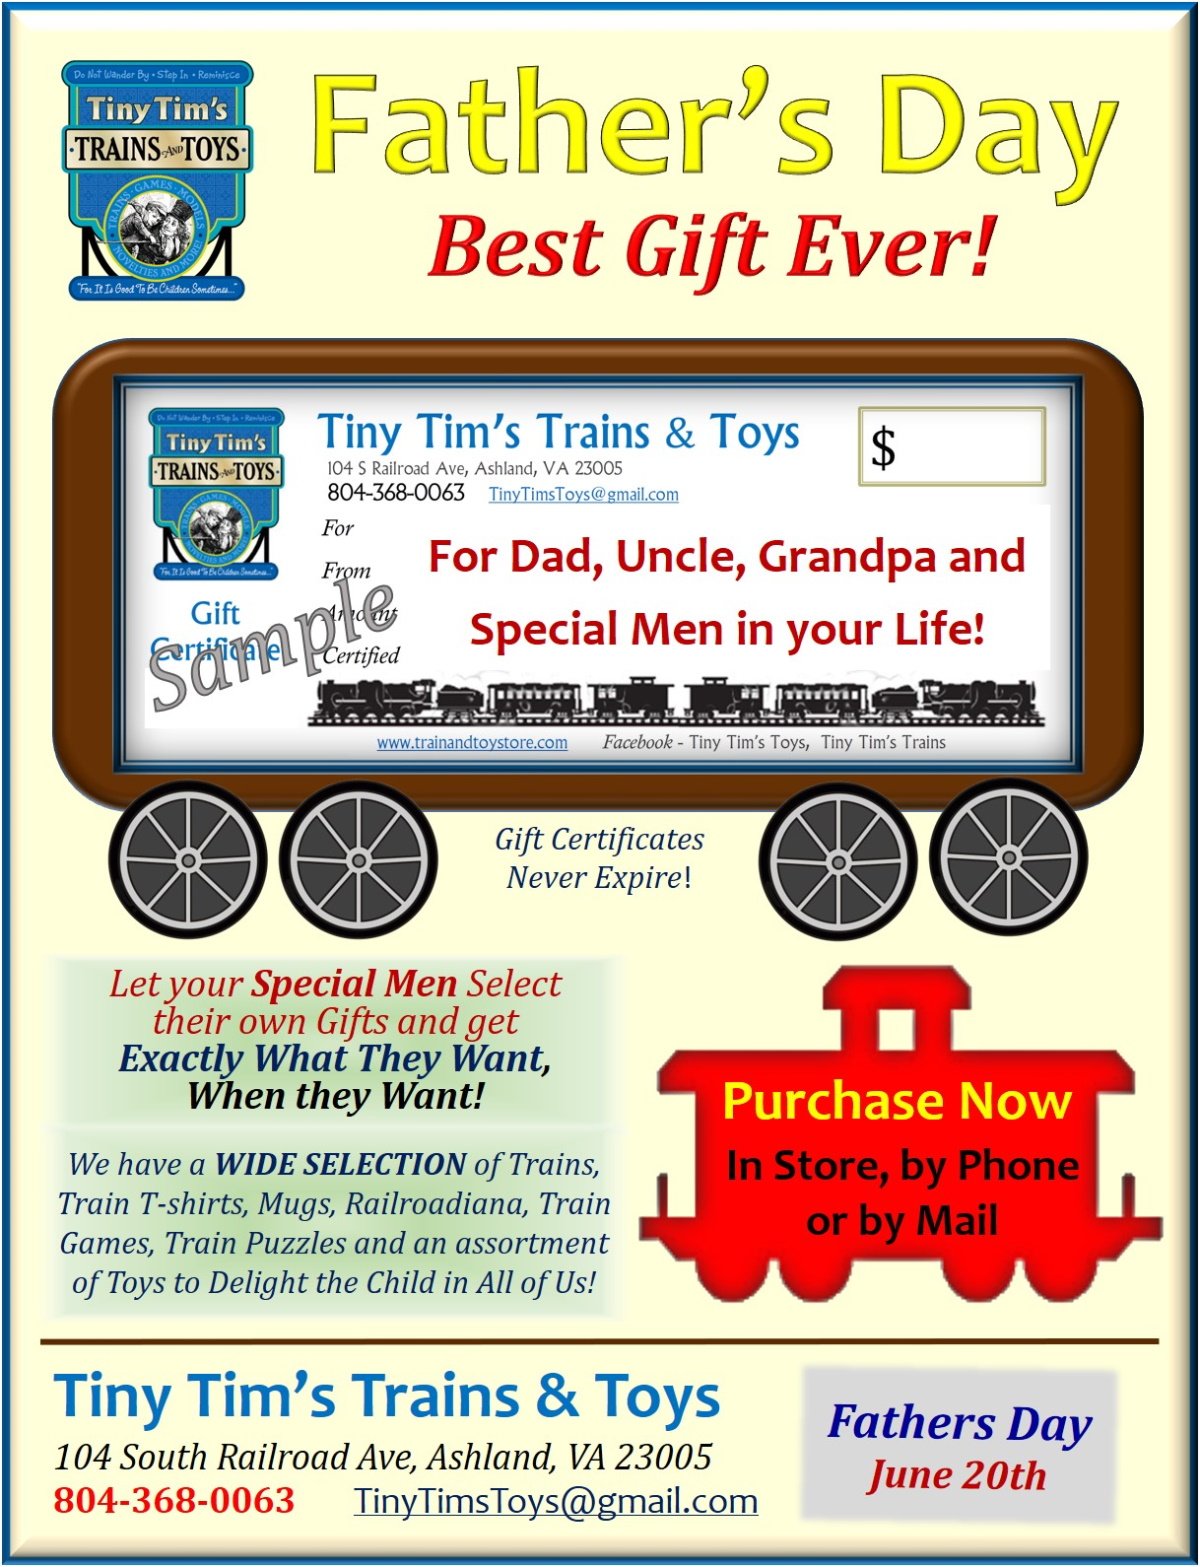 Fathers Day Gift Certificate Promotion